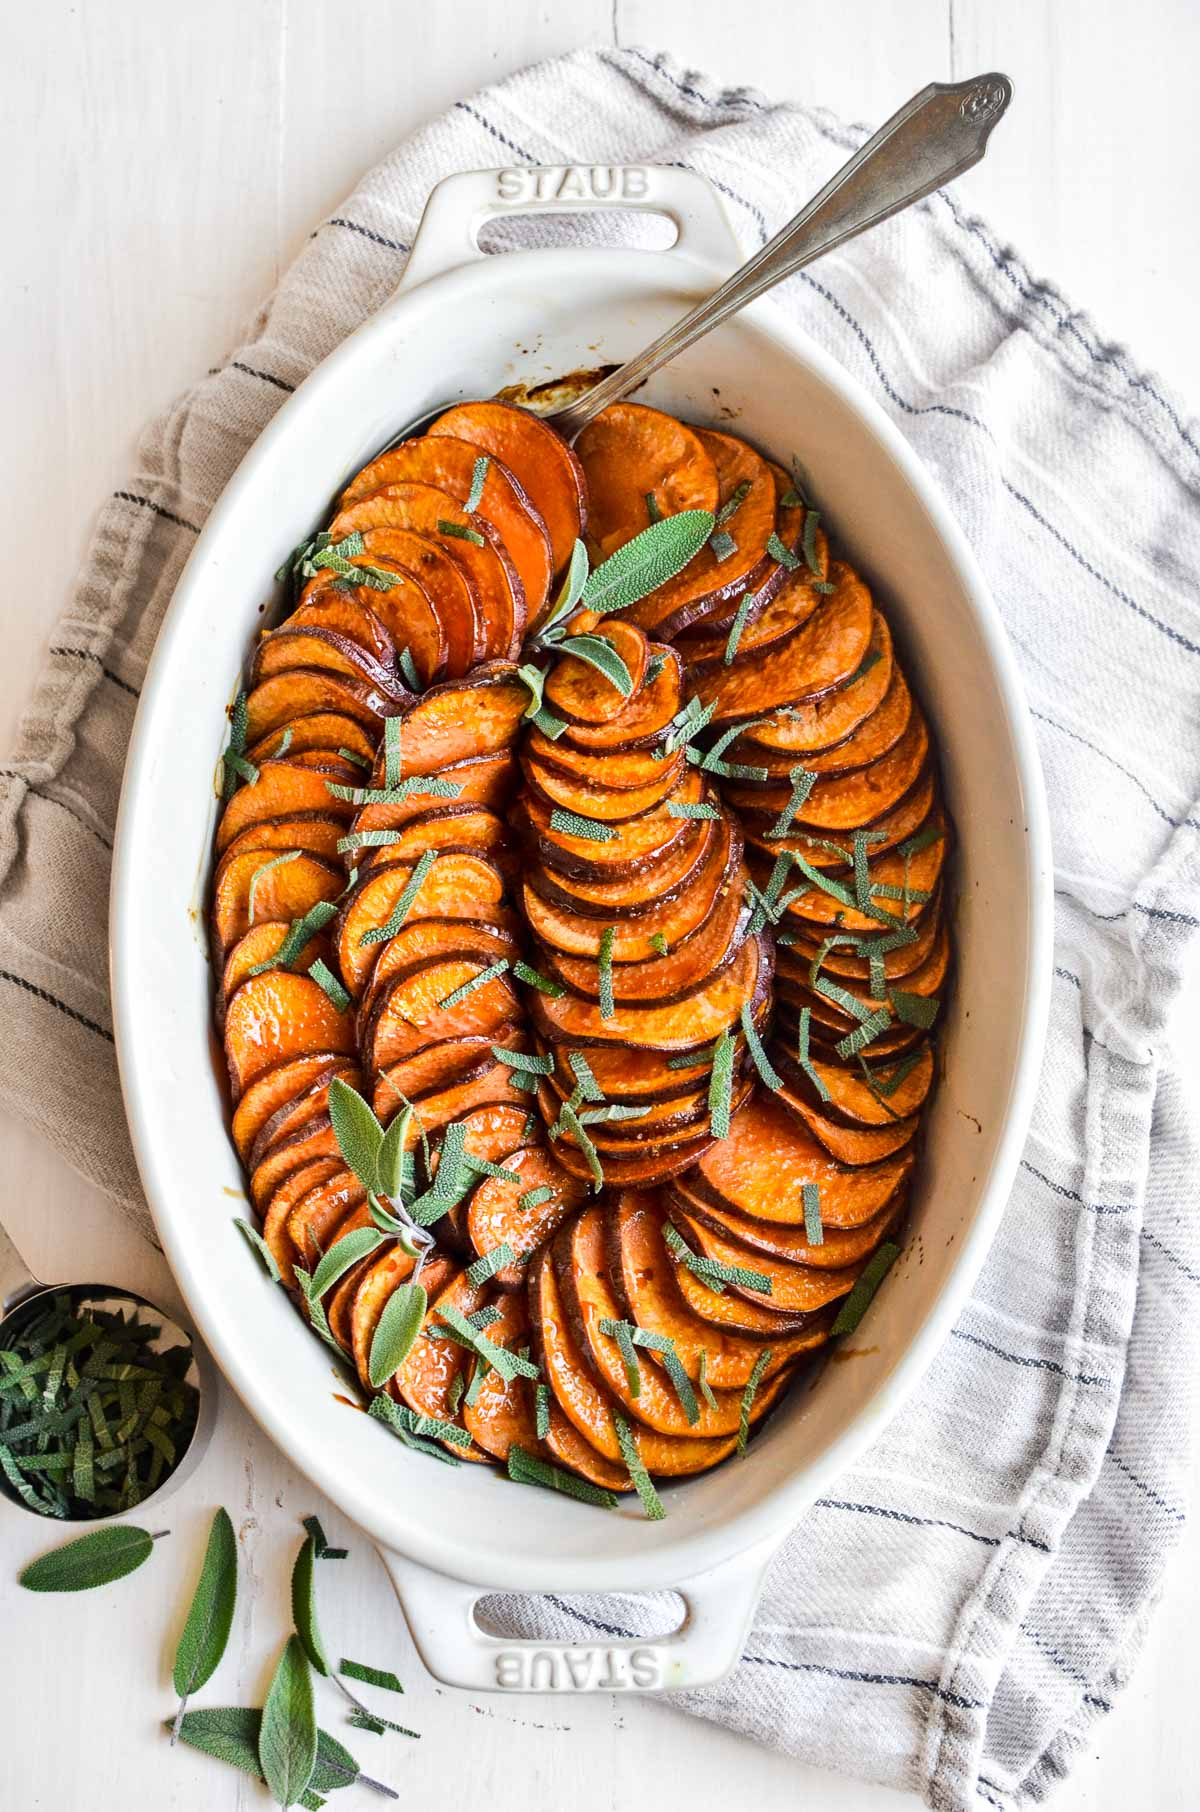 A baking dish of roasted sweet potatoes garnished with sage leaves on a white surface with a striped linen kitchen towel.